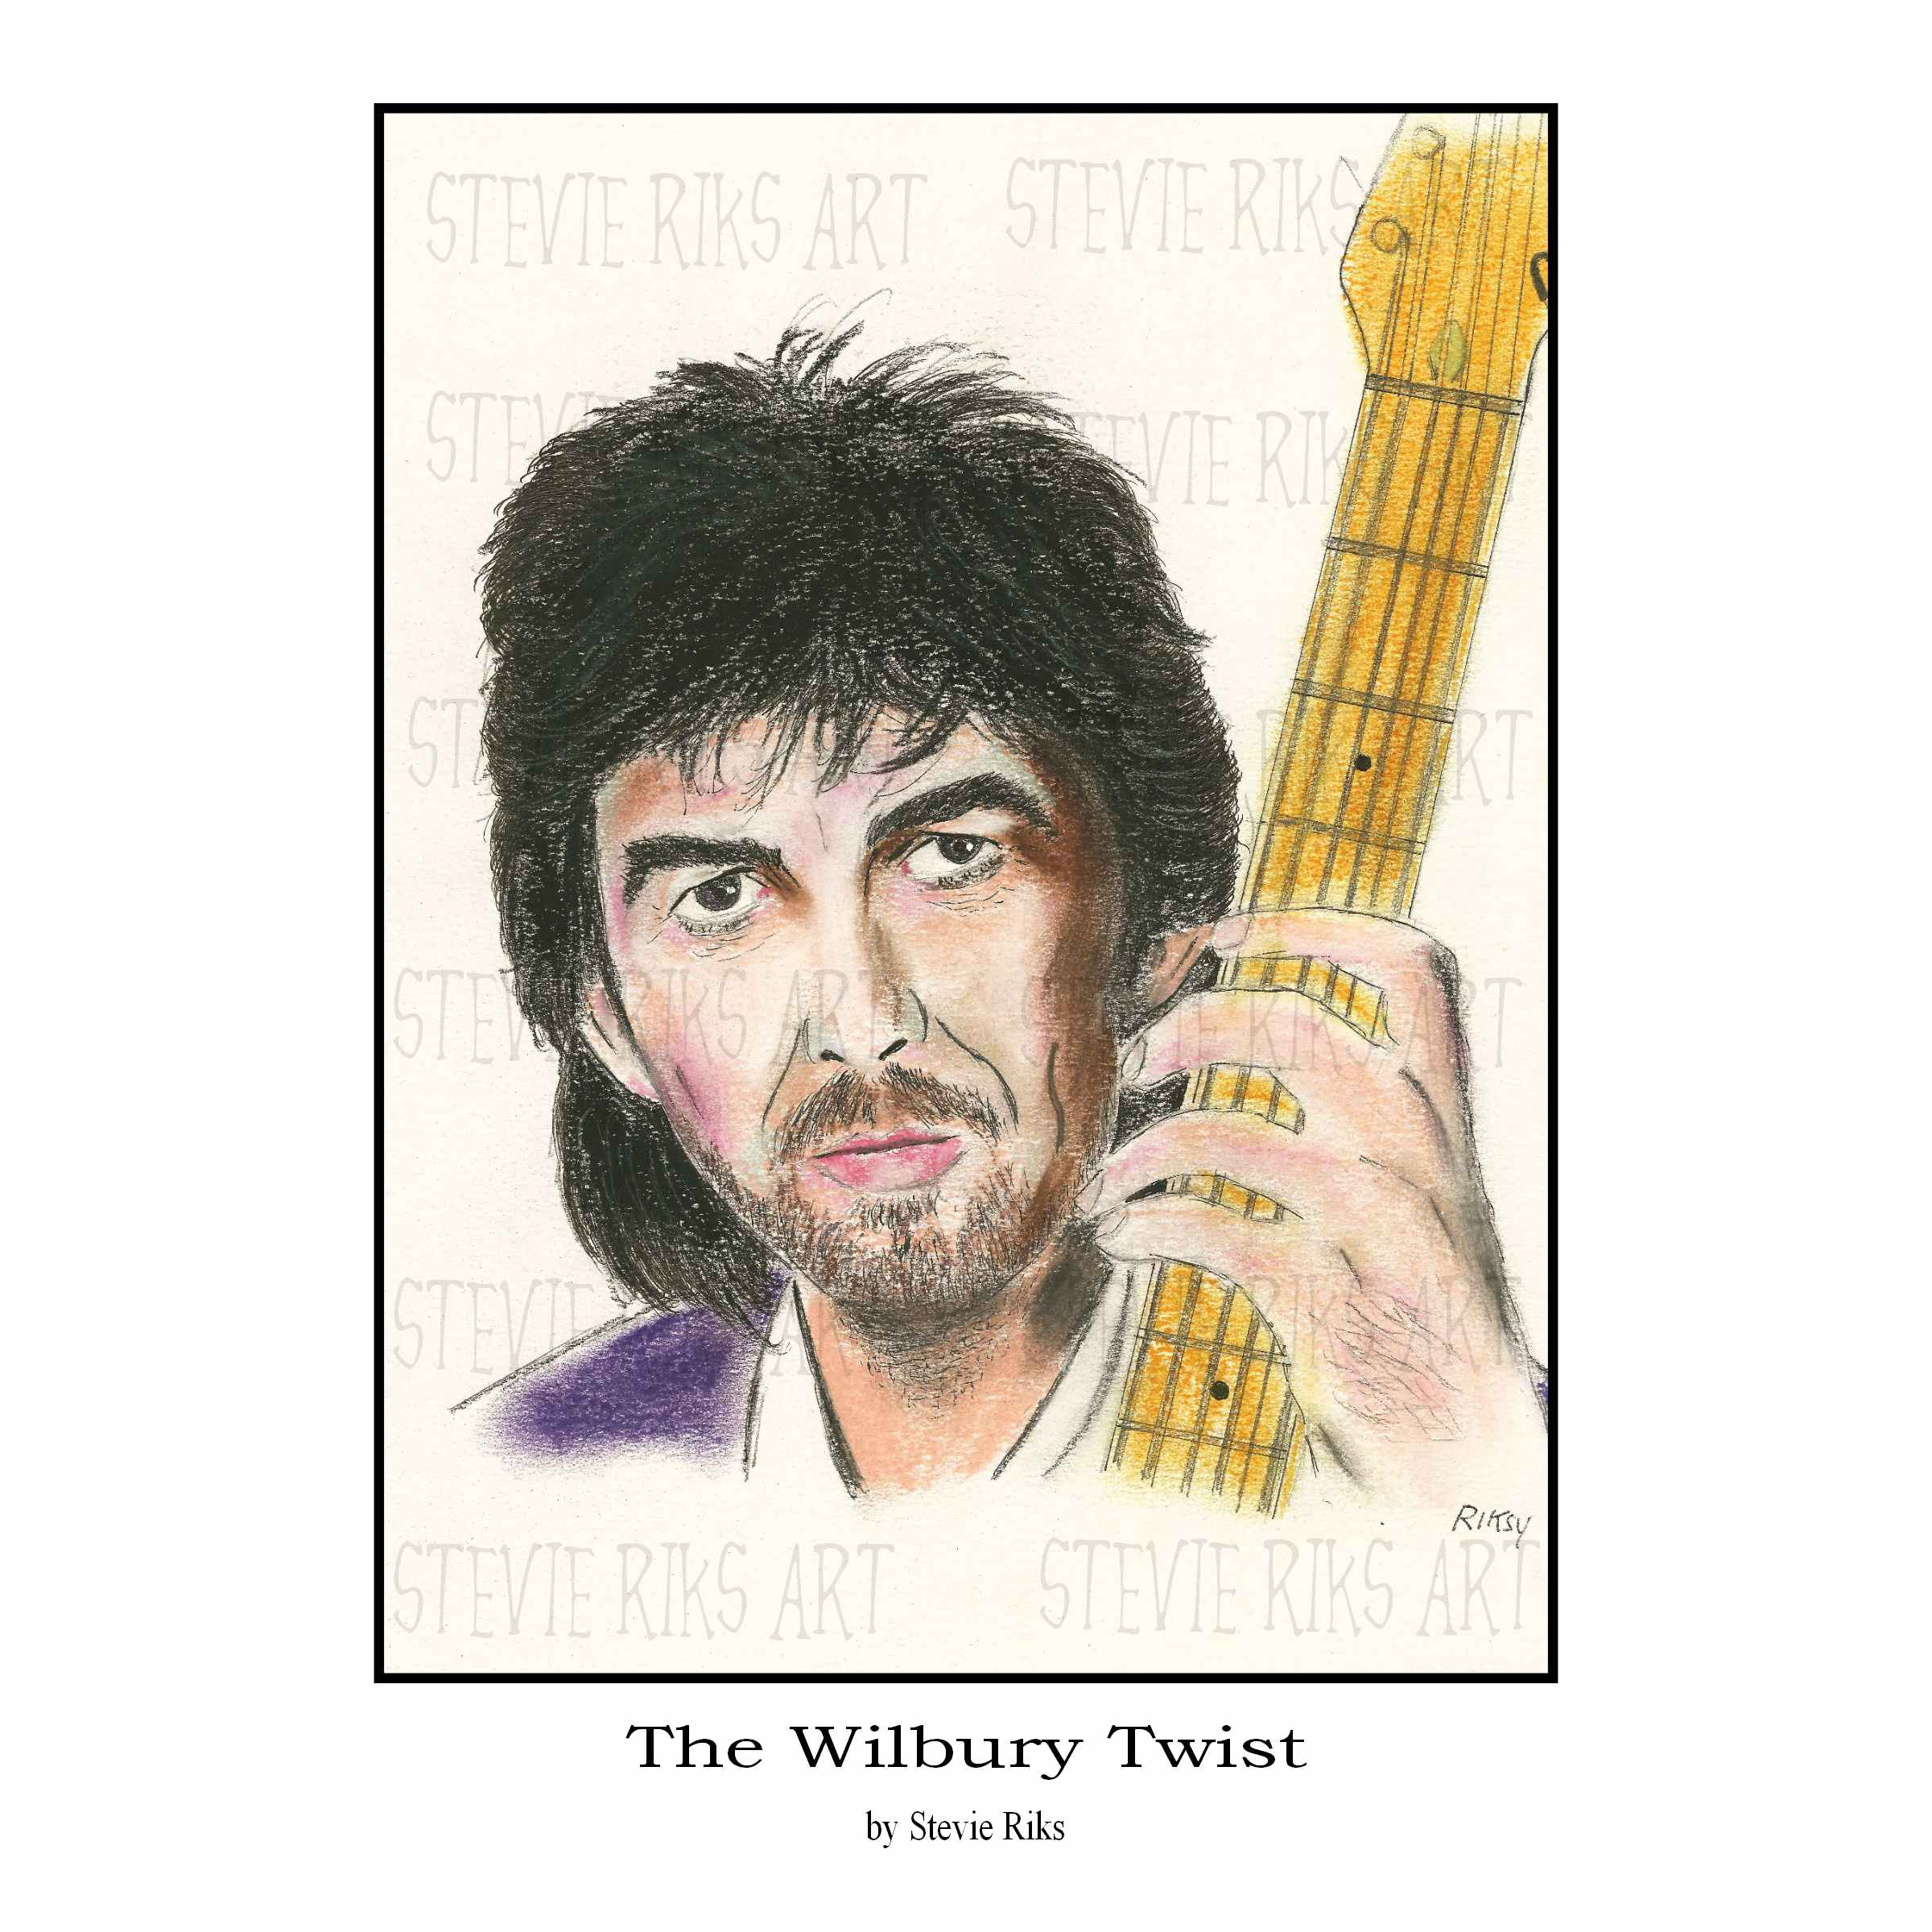 The Wilbury Twist